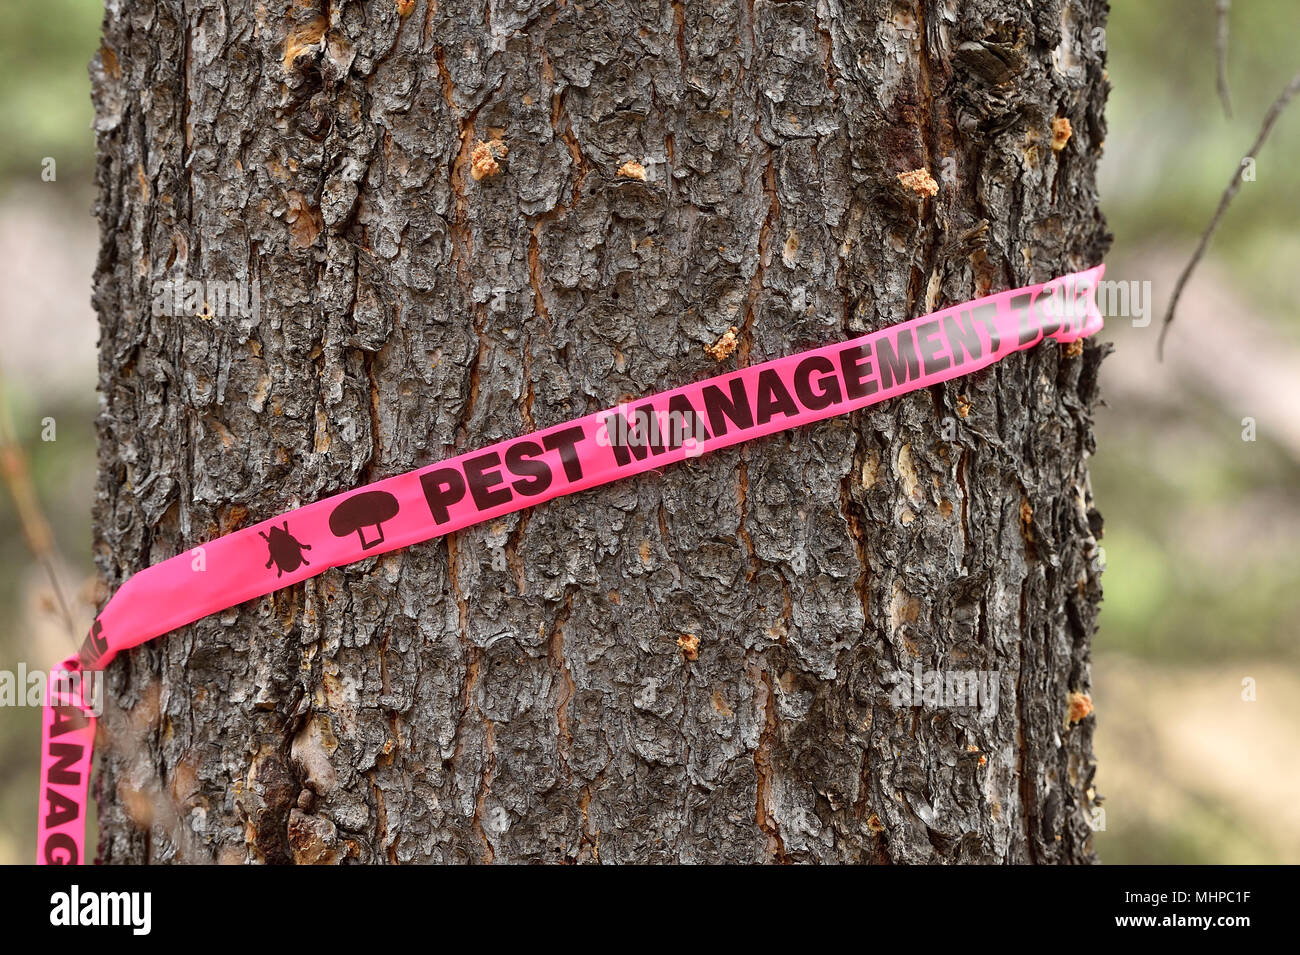 A large pine tree that has been killed by the infestation of pine beetles in rural Alberta Canada. - Stock Image